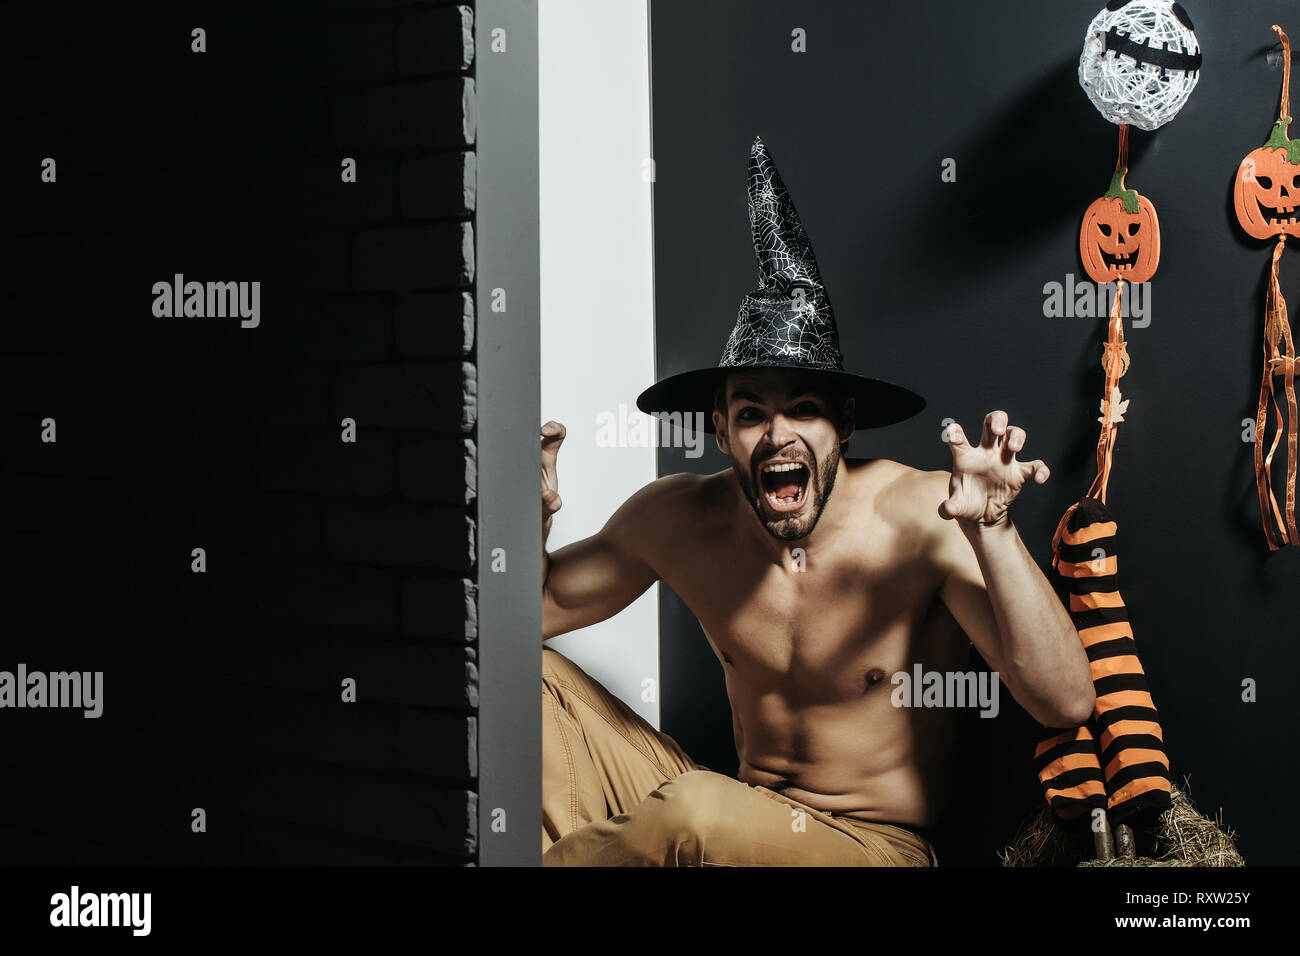 Halloween man in witch hat shouting with grabbing hands - Stock Image